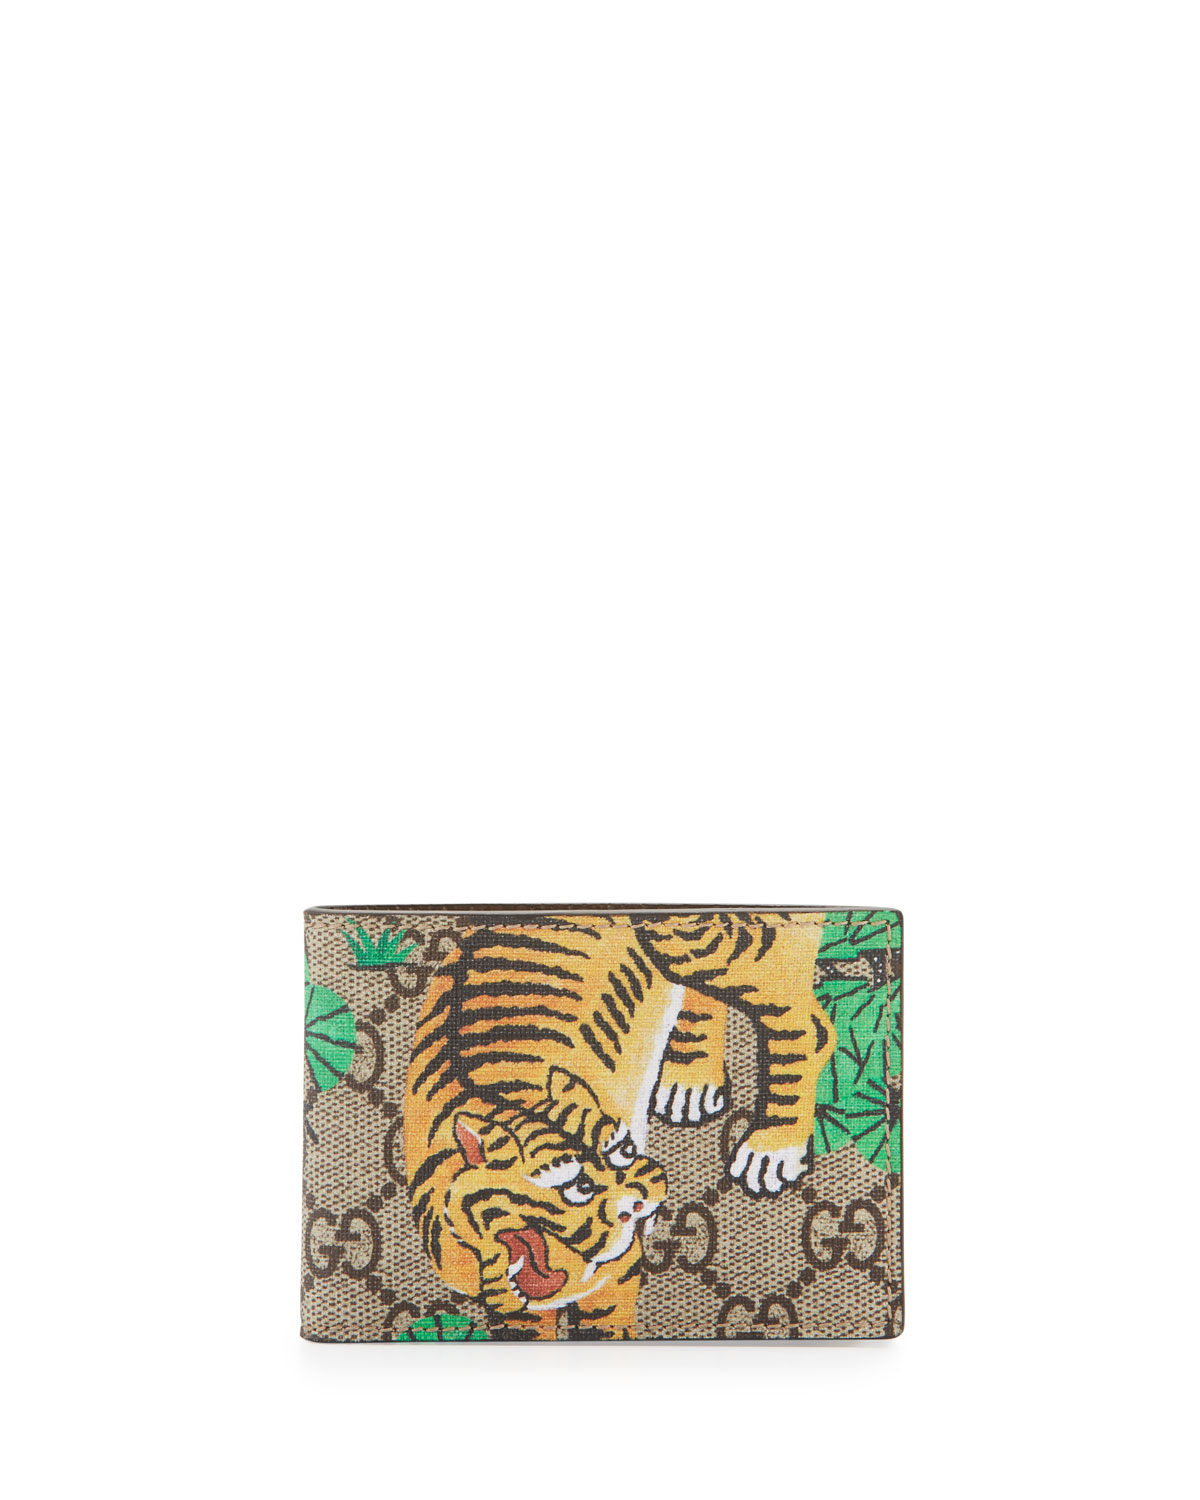 3dba2af399b5 Gucci Bengal GG Supreme Wallet | Neiman Marcus